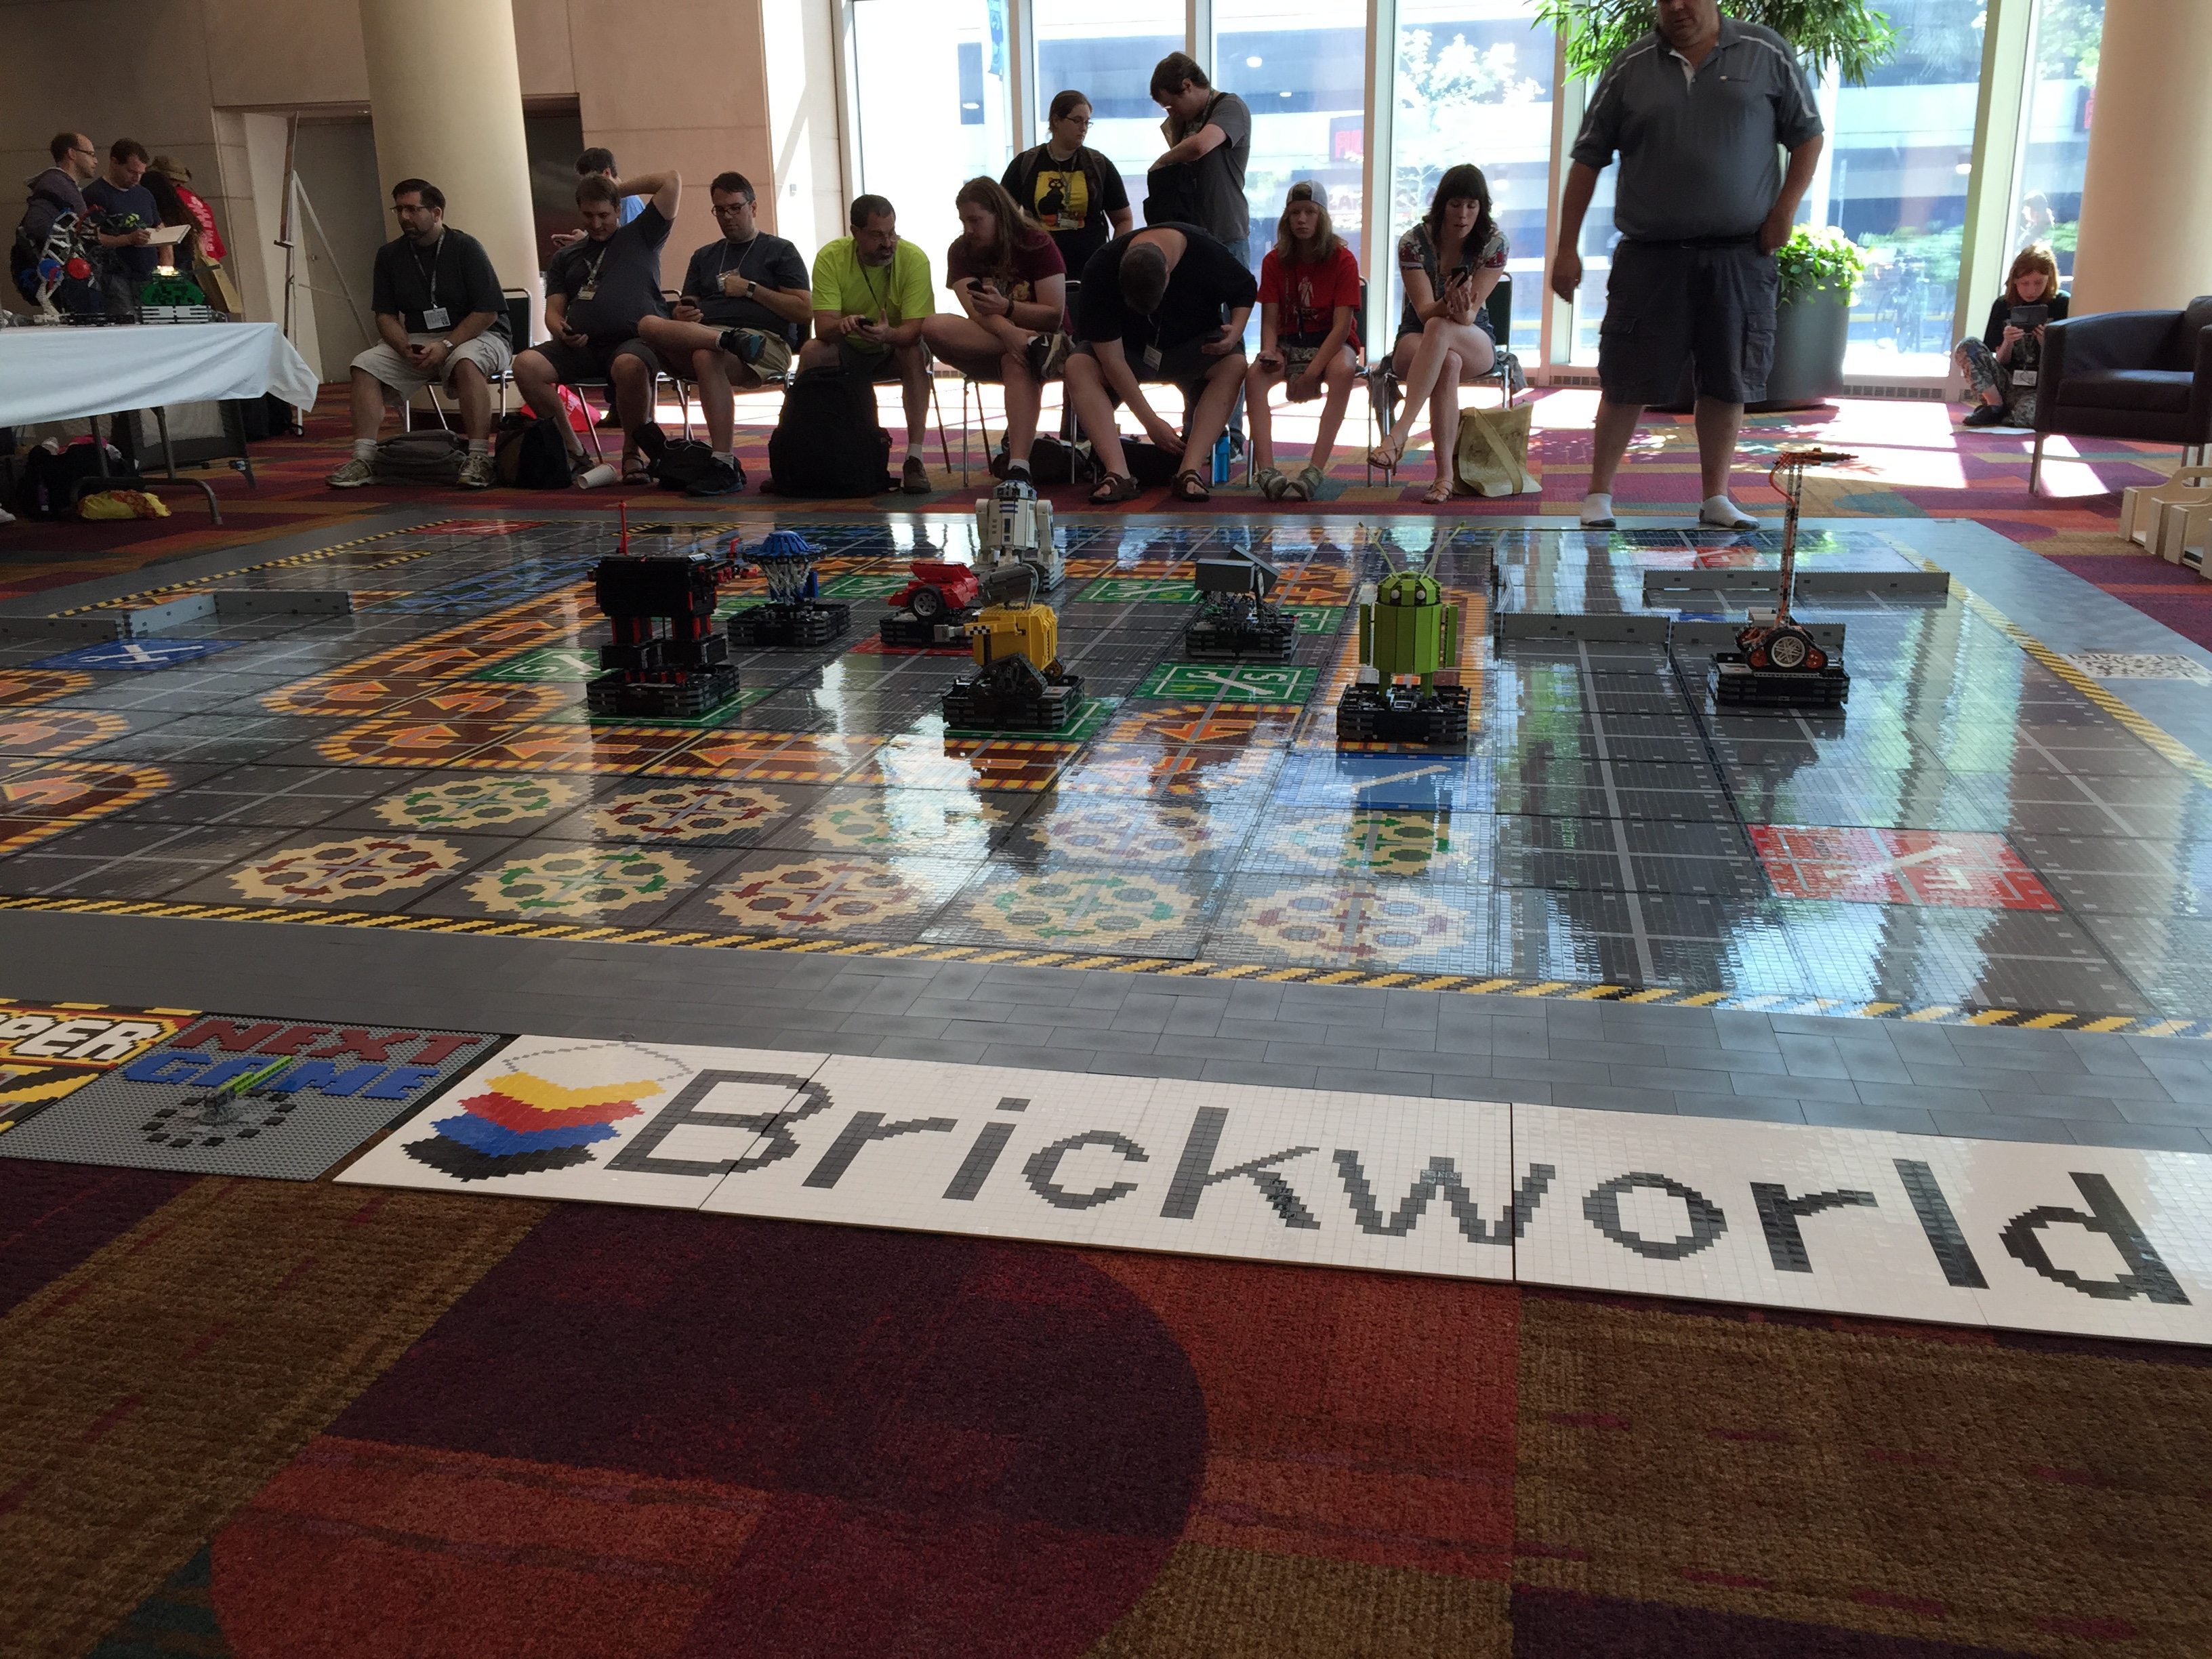 Brickworld's giant edition of Robo Rally